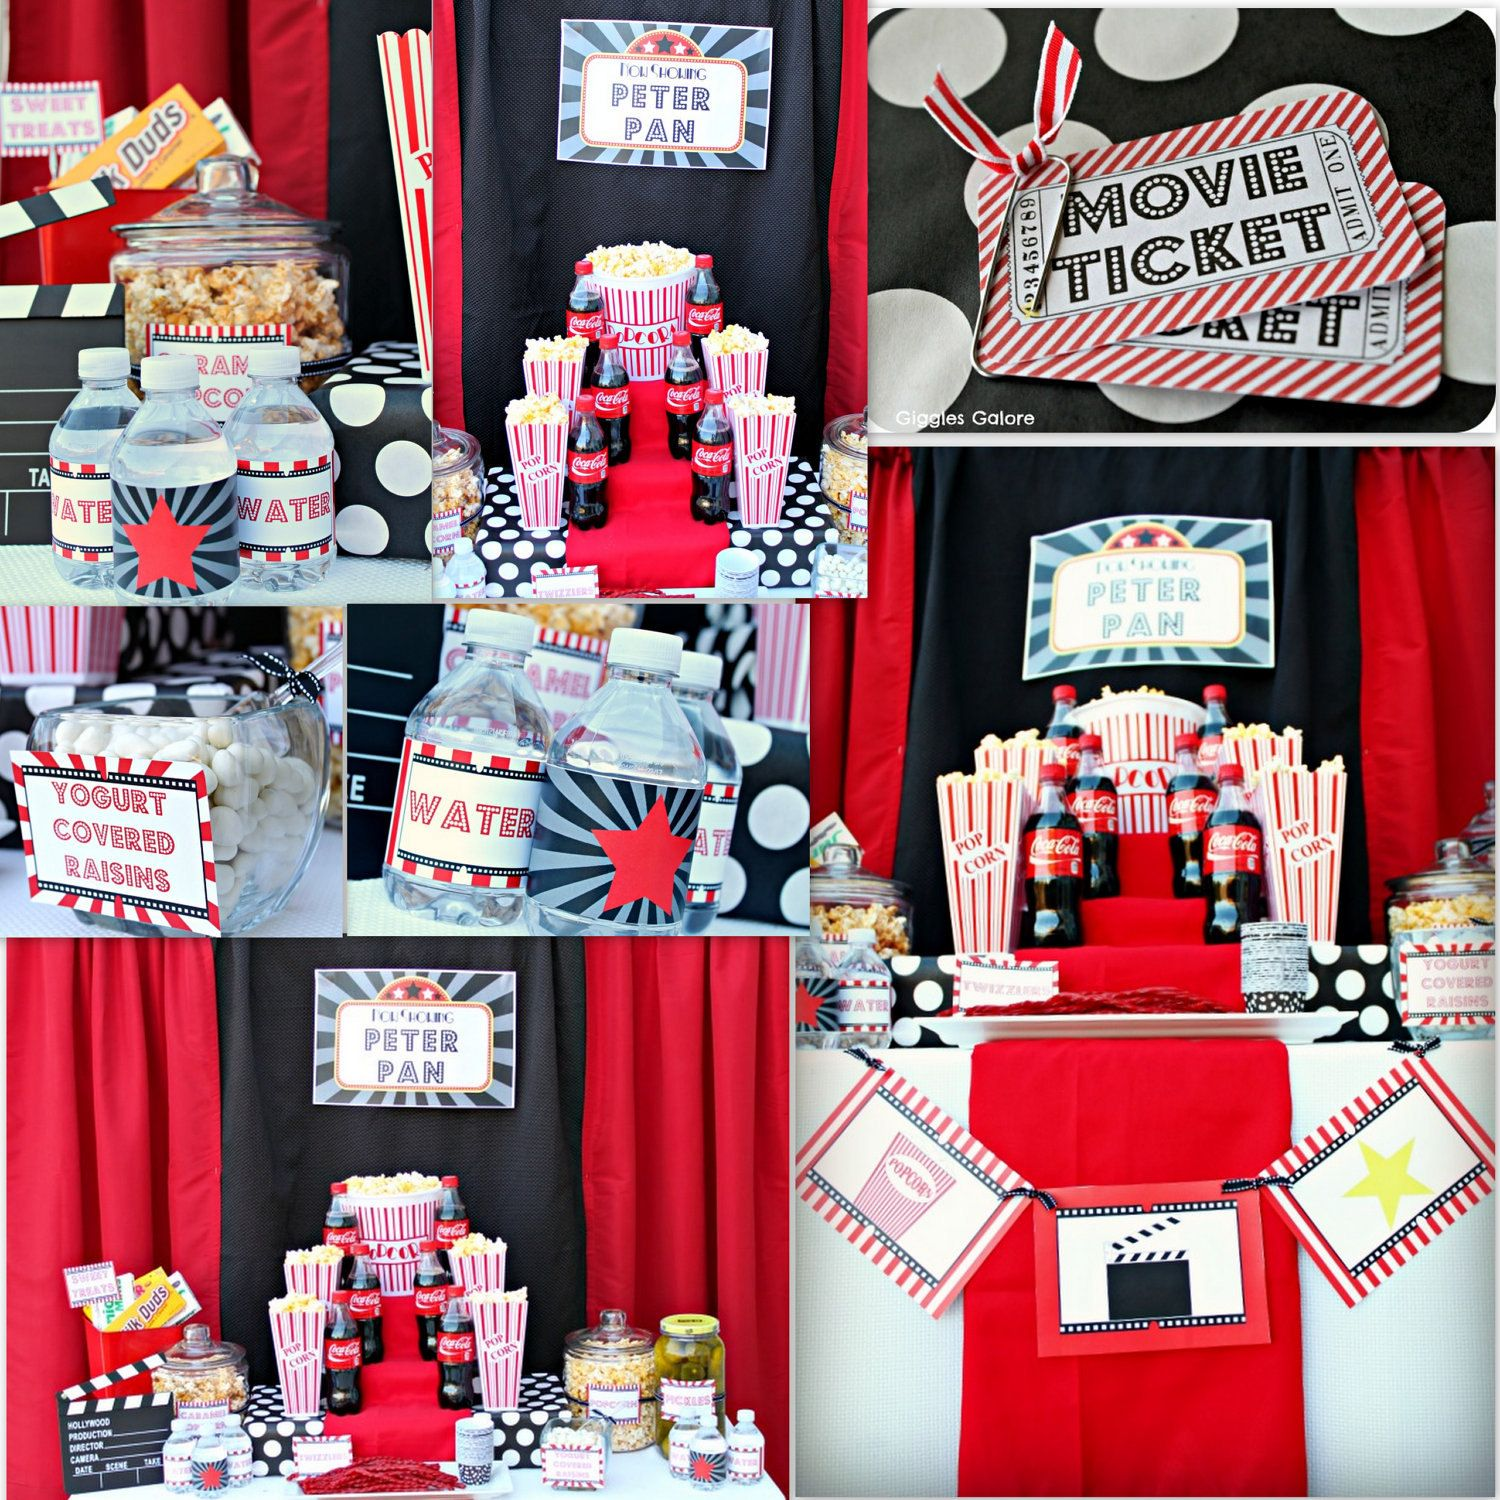 10 Images About Teen Science Themed Bedrooms On Pinterest: Movie Printable Party Package...DIY. $10.00, Via Etsy